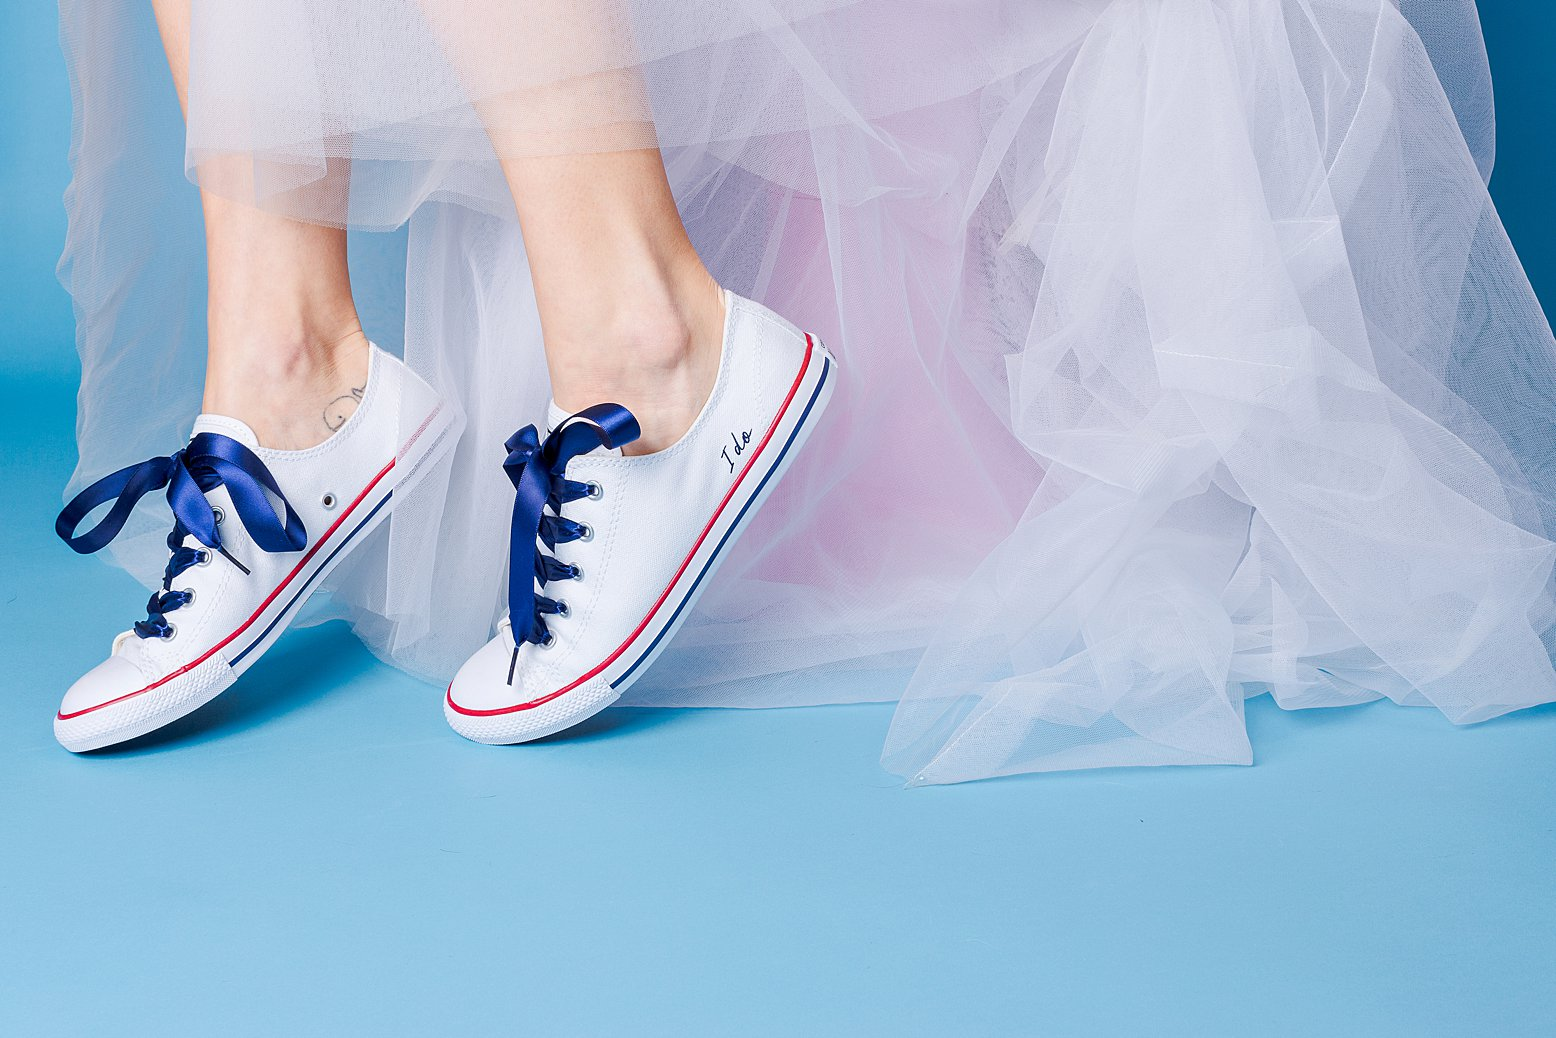 Product and lifestyle photography & content creation for Wedding Converse. Product photography & styling by Marianne Taylor.